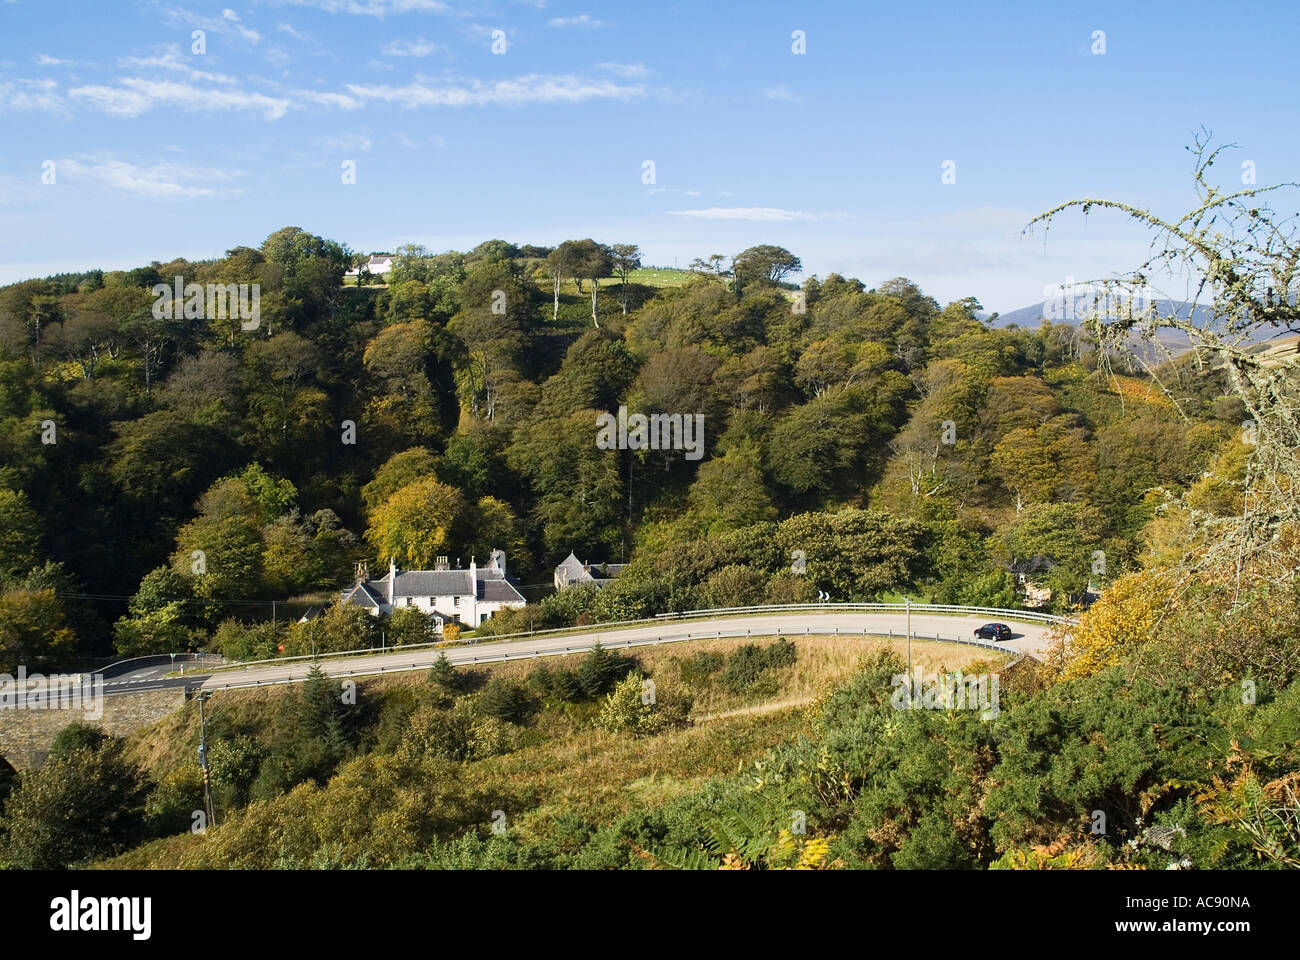 dh A9 North Coast 500 BERRIEDALE CAITHNESS Motor car travelling Berriedale bend scotland scenic road route - Stock Image